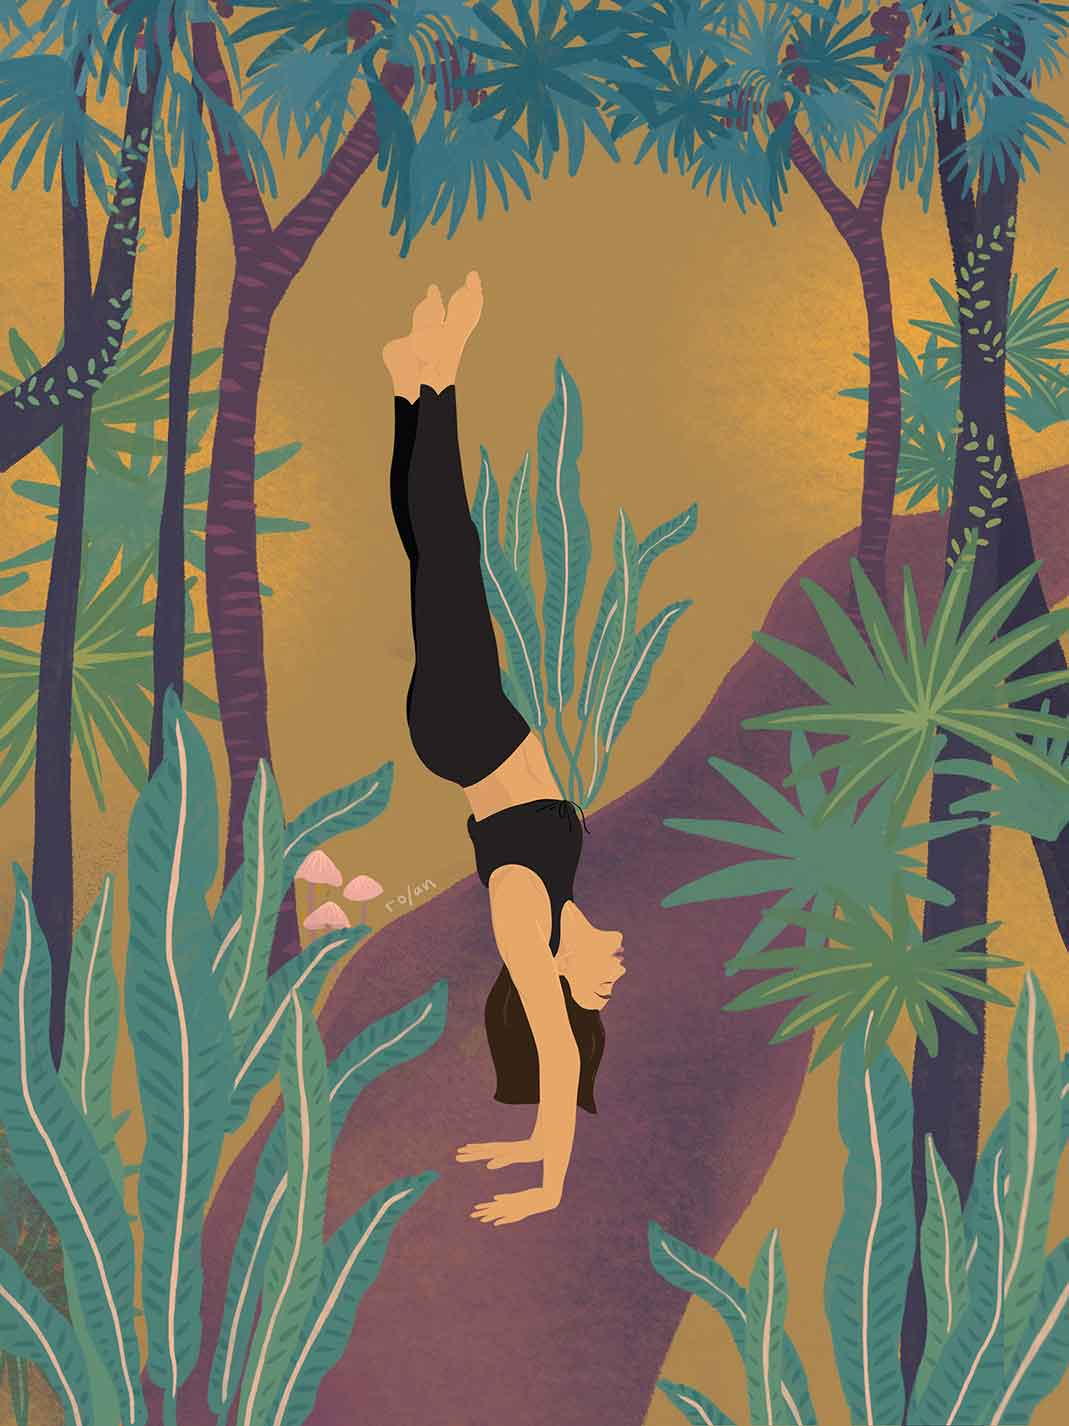 ro/an yoga illustration handstand in jungle